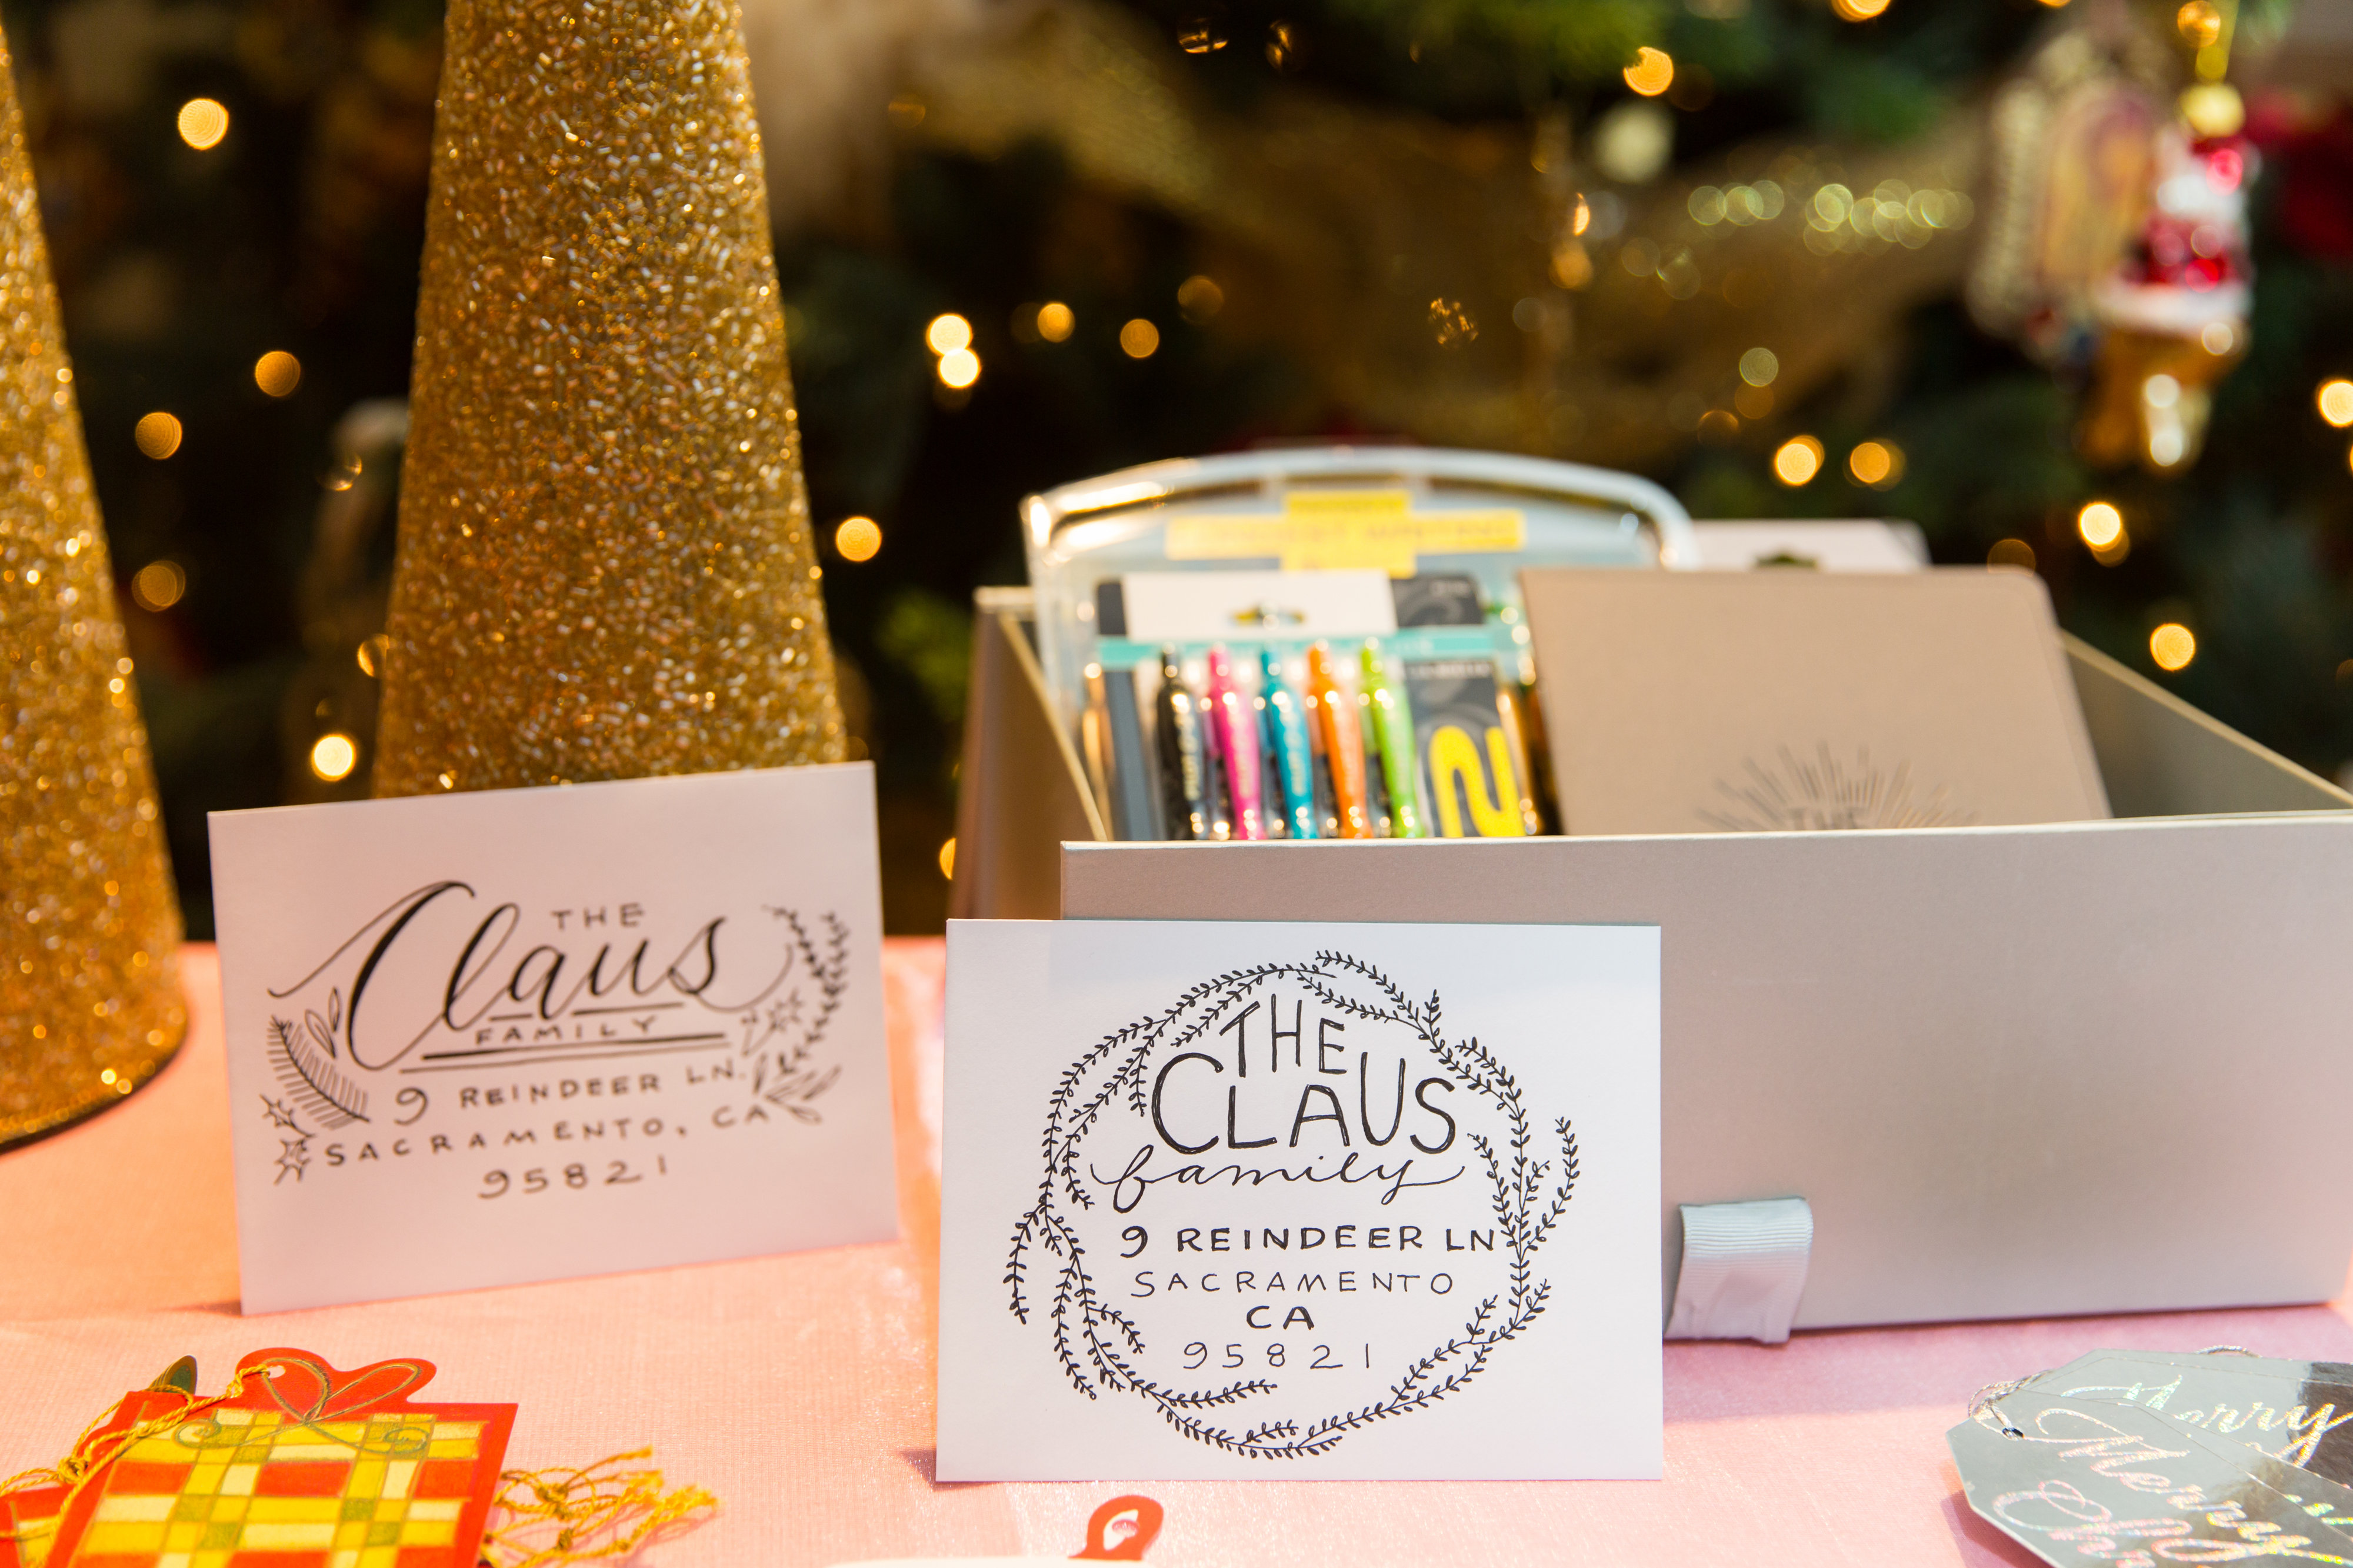 I teamed up with Pilot Pen to share gratitude this holiday season with a fun DIY!